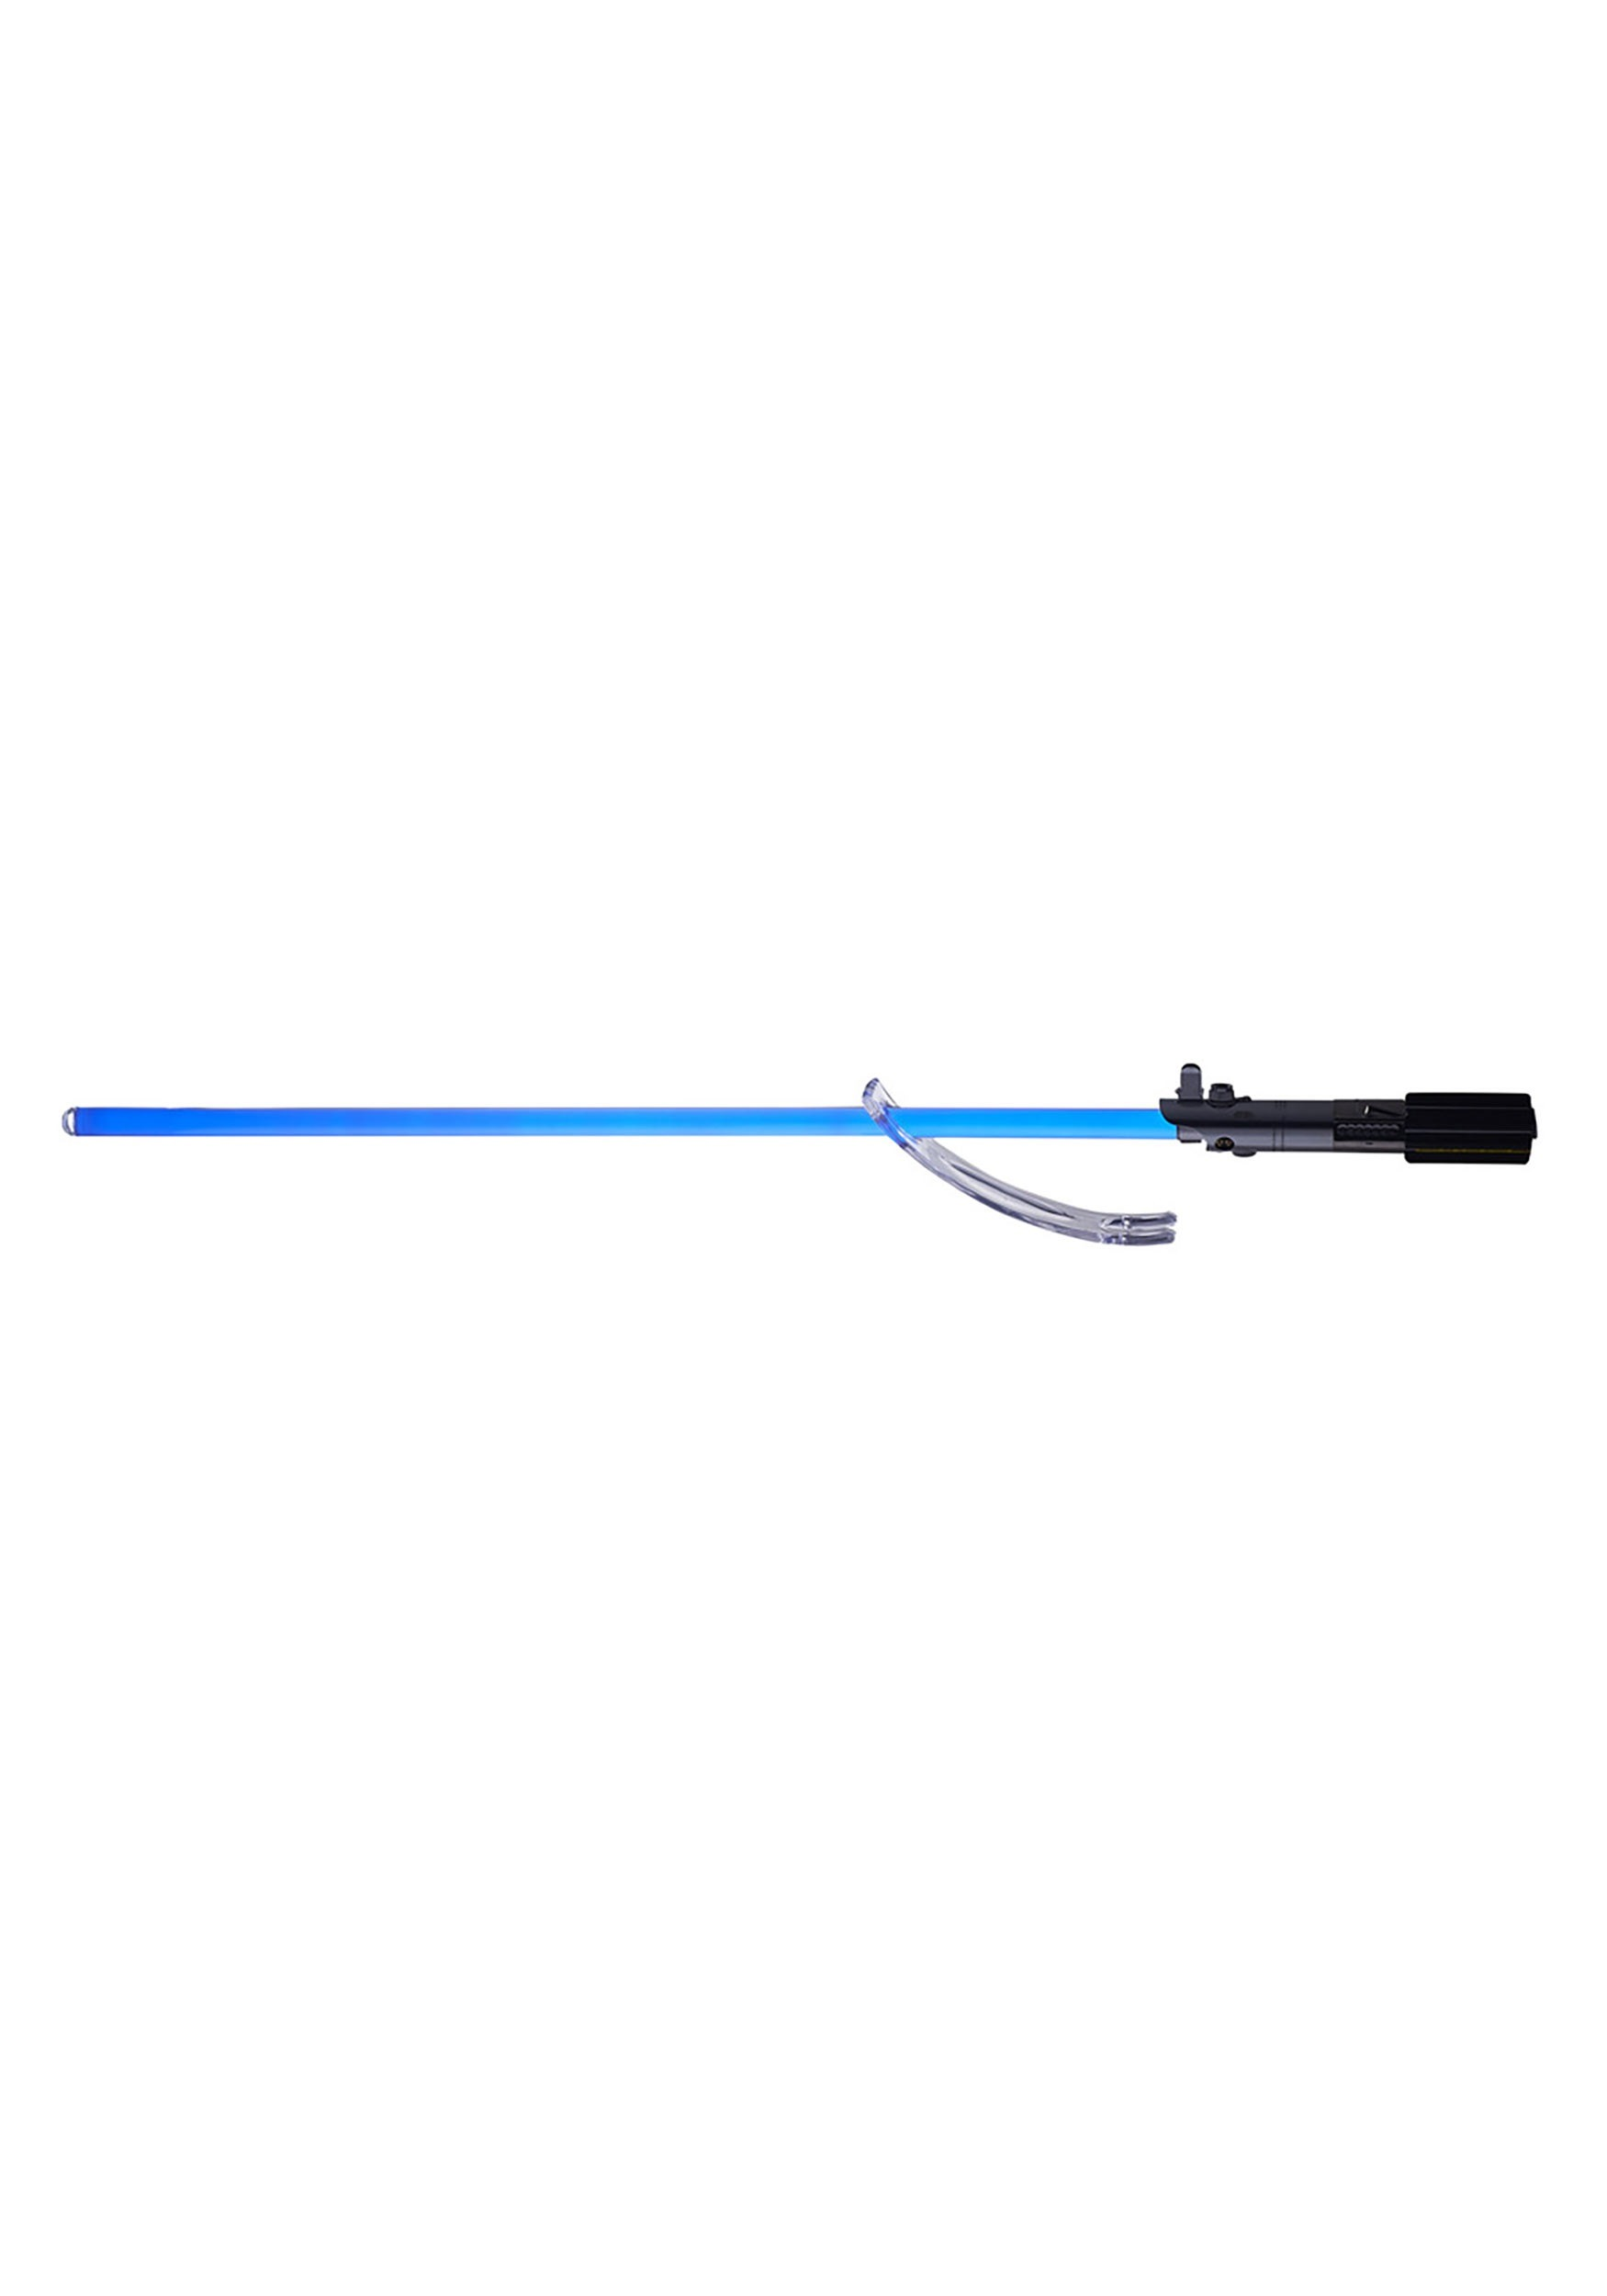 Star Wars Luke Skywalker Force FX Lightsaber EEDB3922AS00